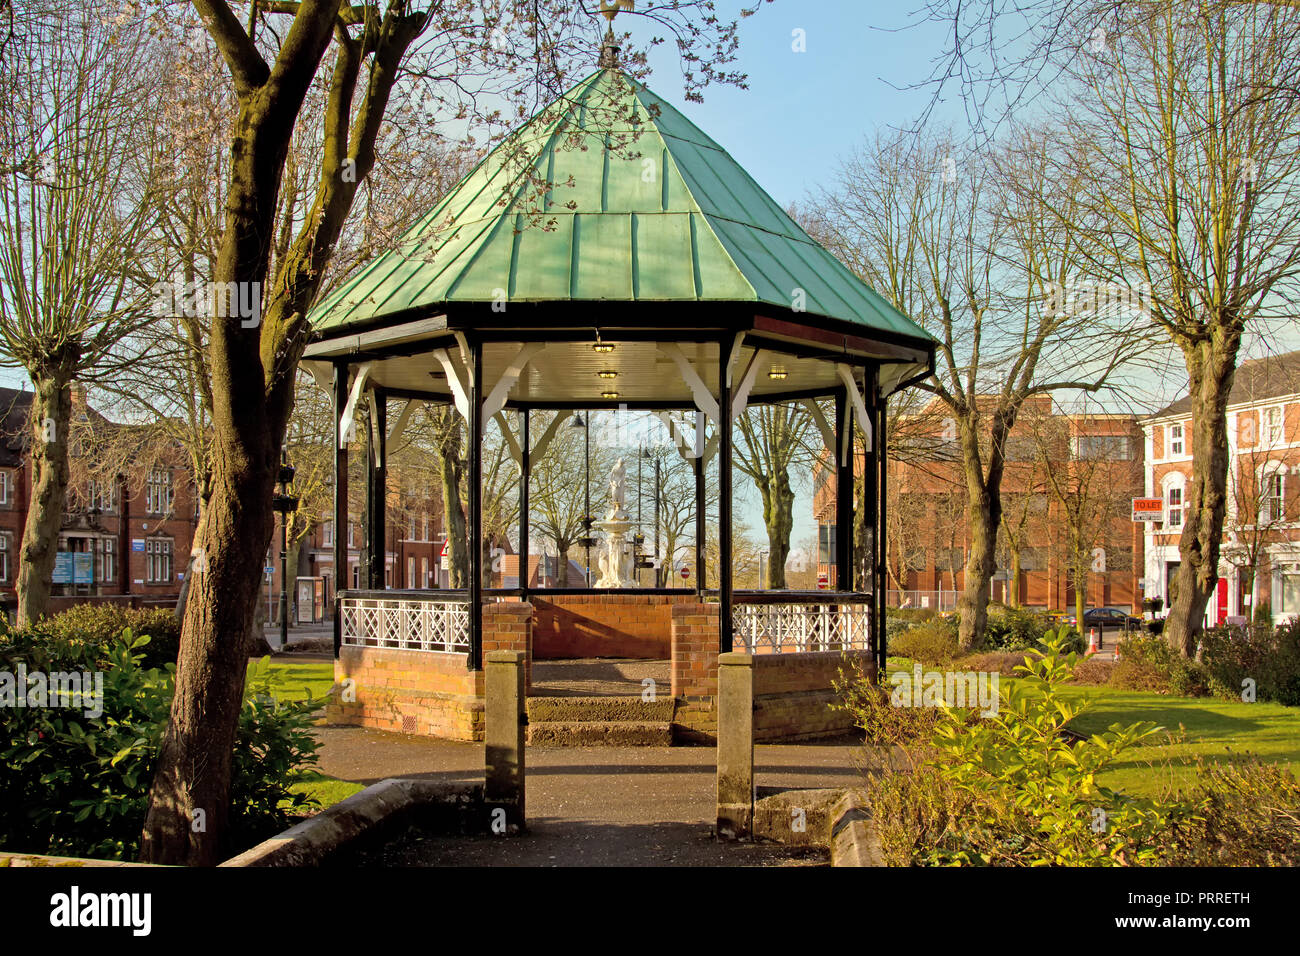 Redditch bandstand with Bartleet Fountain just behind. - Stock Image